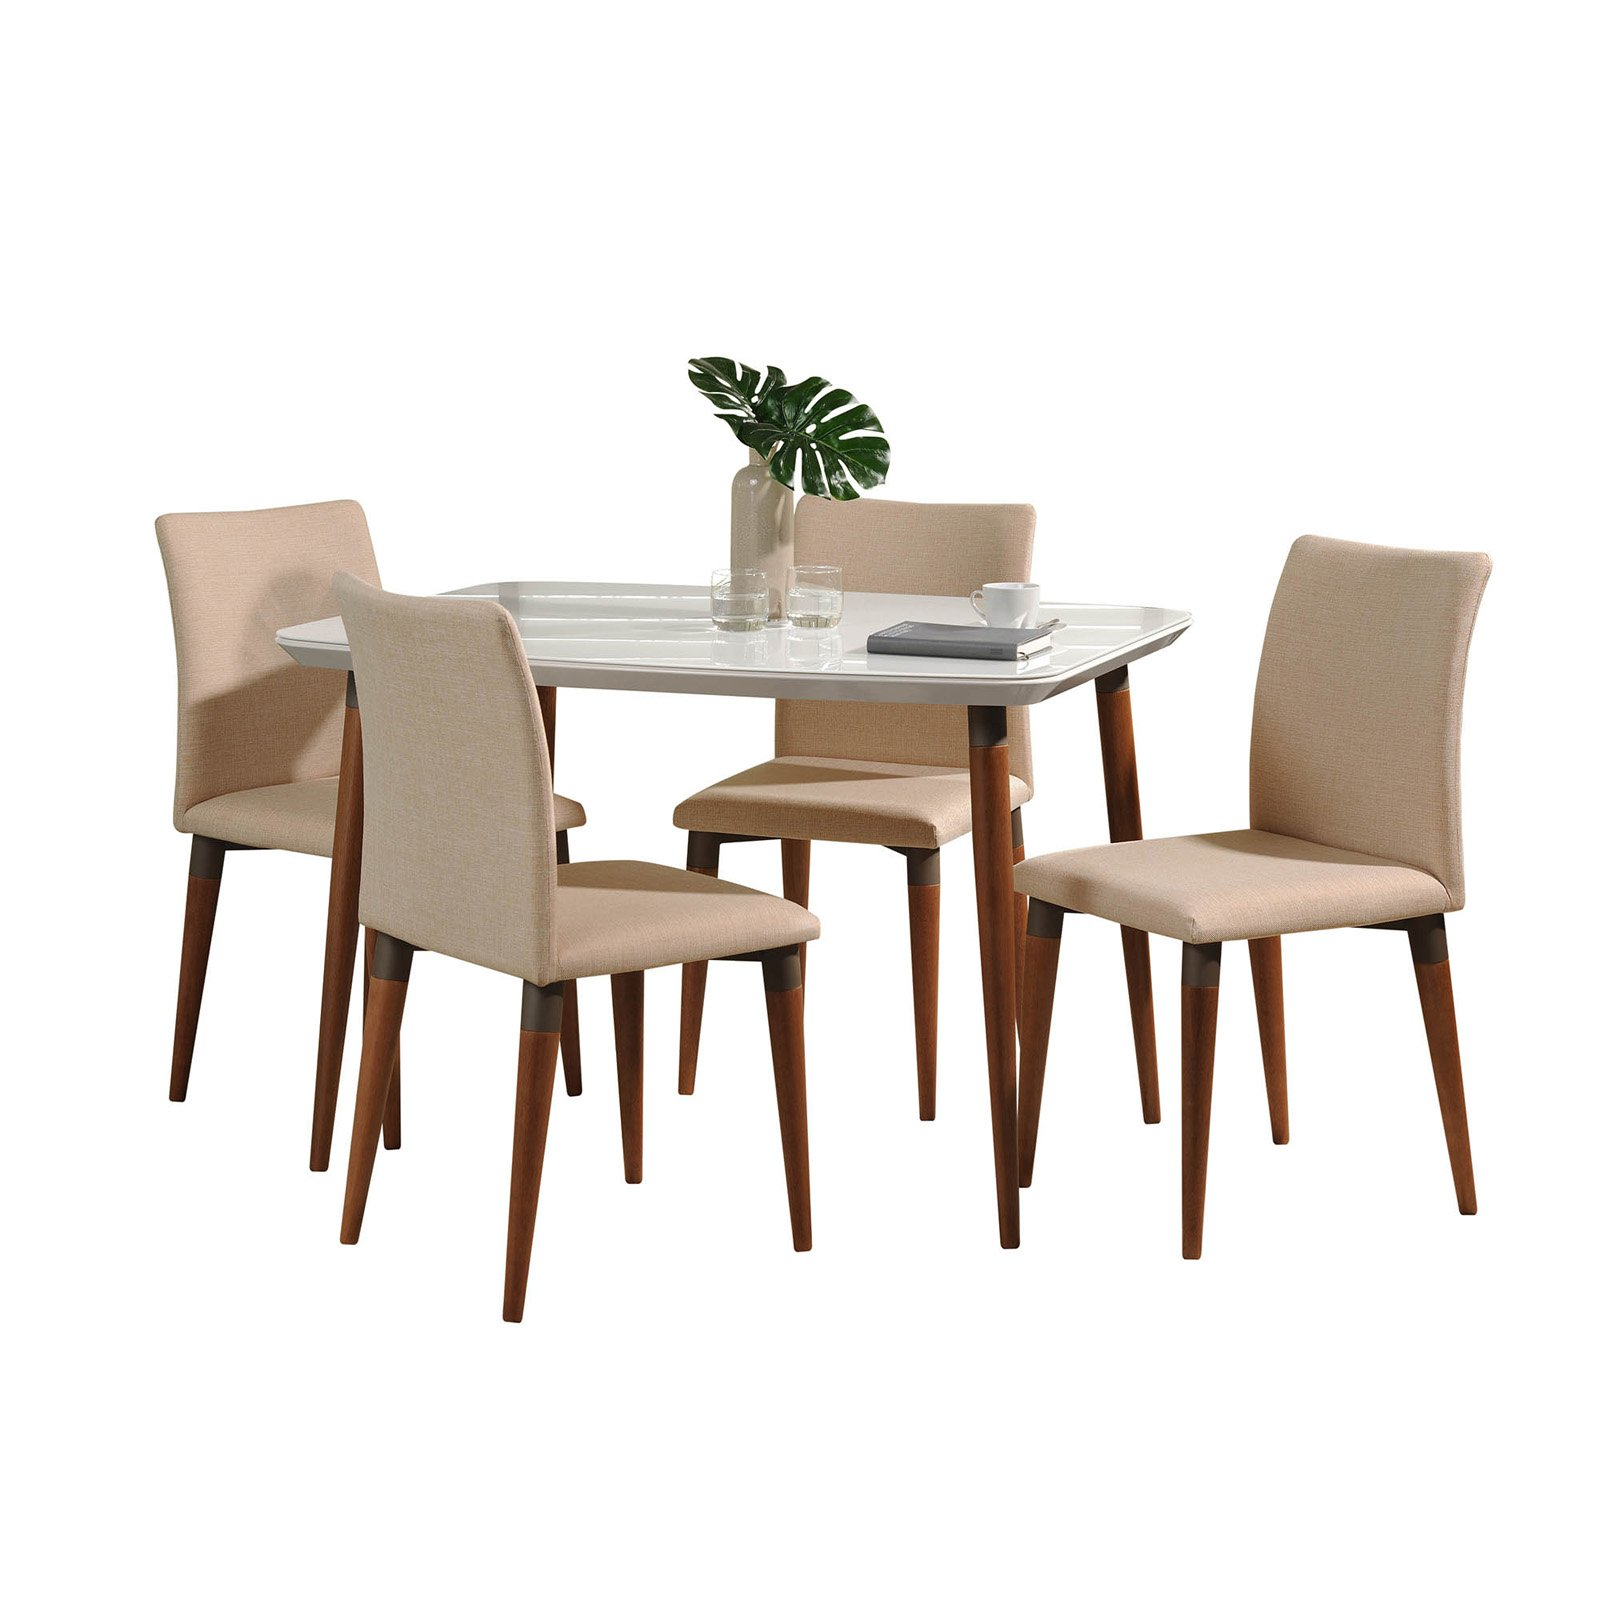 Manhattan Comfort Charles 5 Piece Dining Table Set